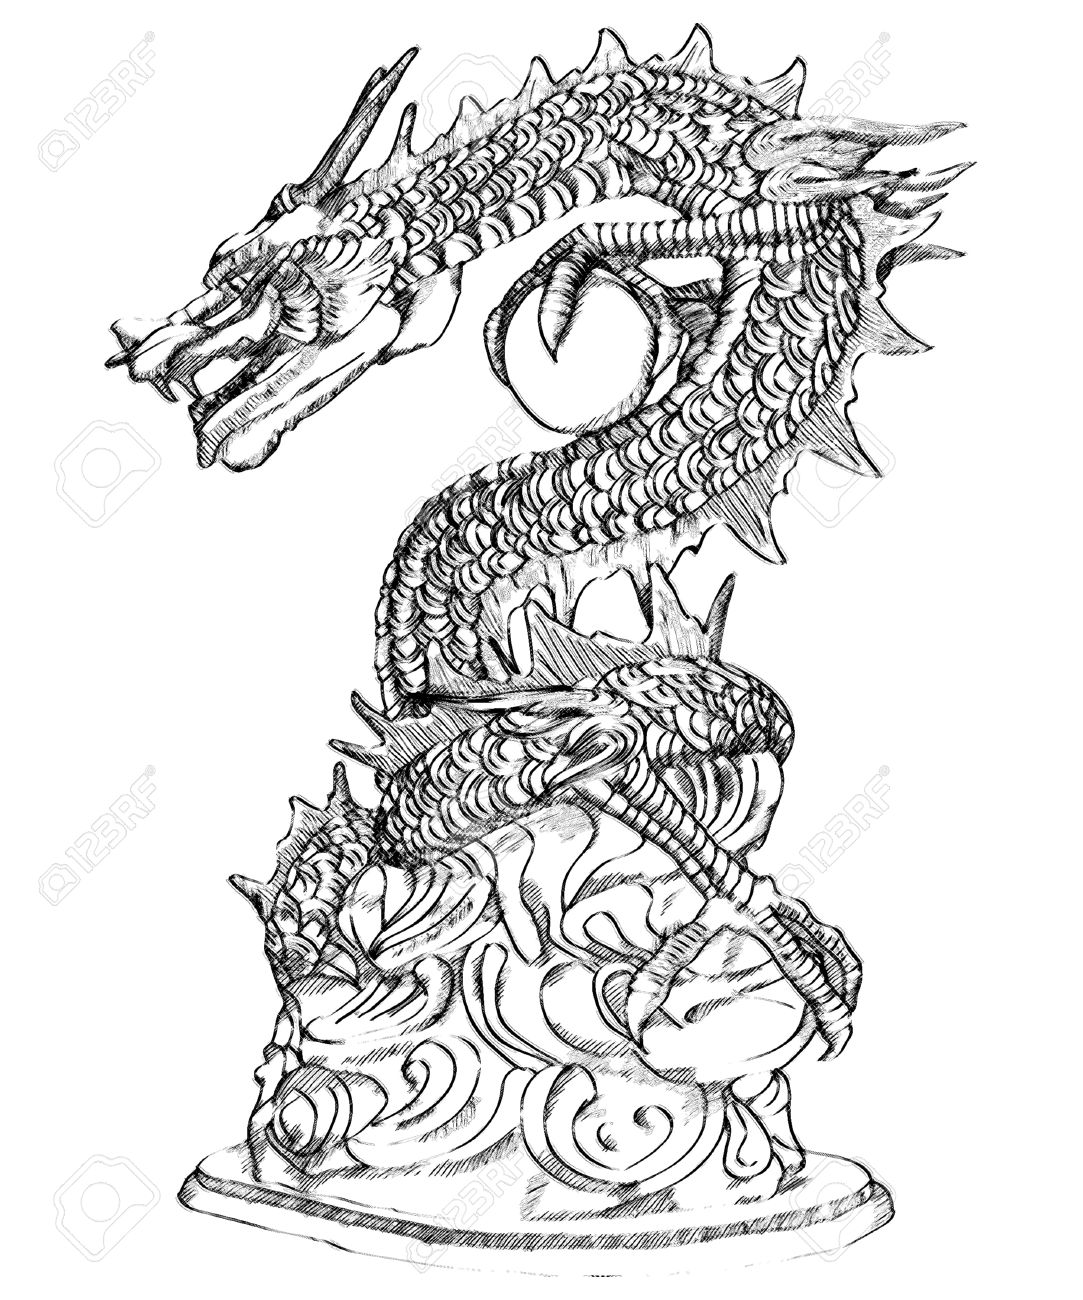 1083x1300 Chinese Style Dragon Statue Sketch Up Stock Photo, Picture